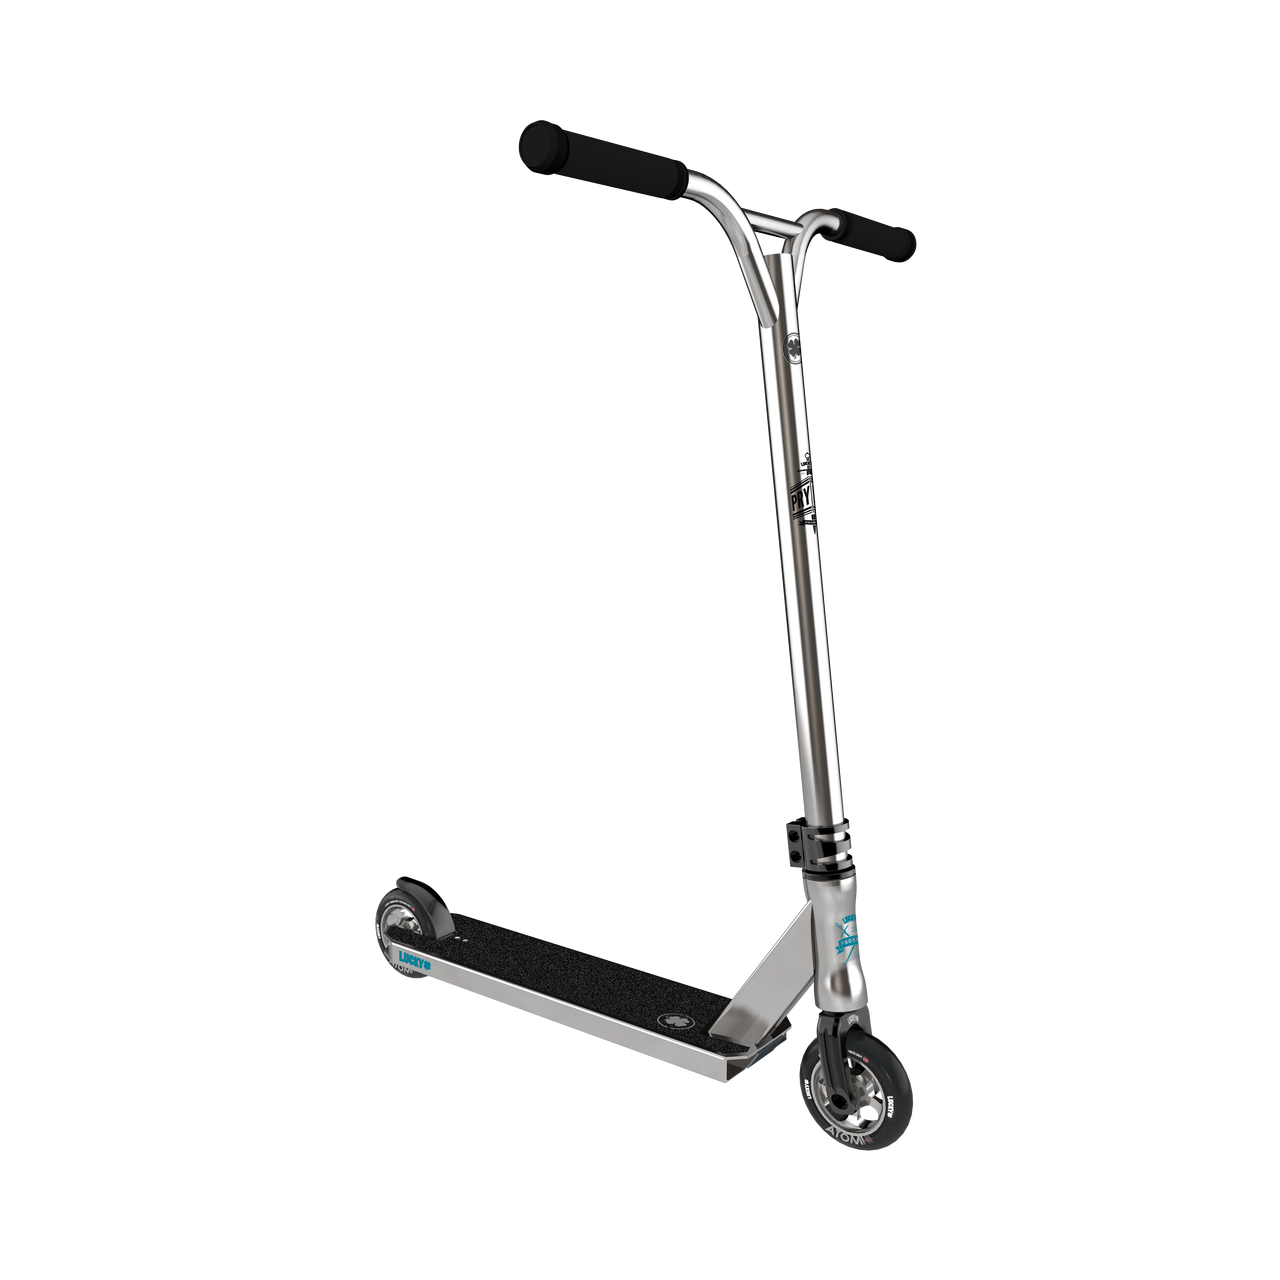 Png image purepng free. Scooter clipart kick scooter